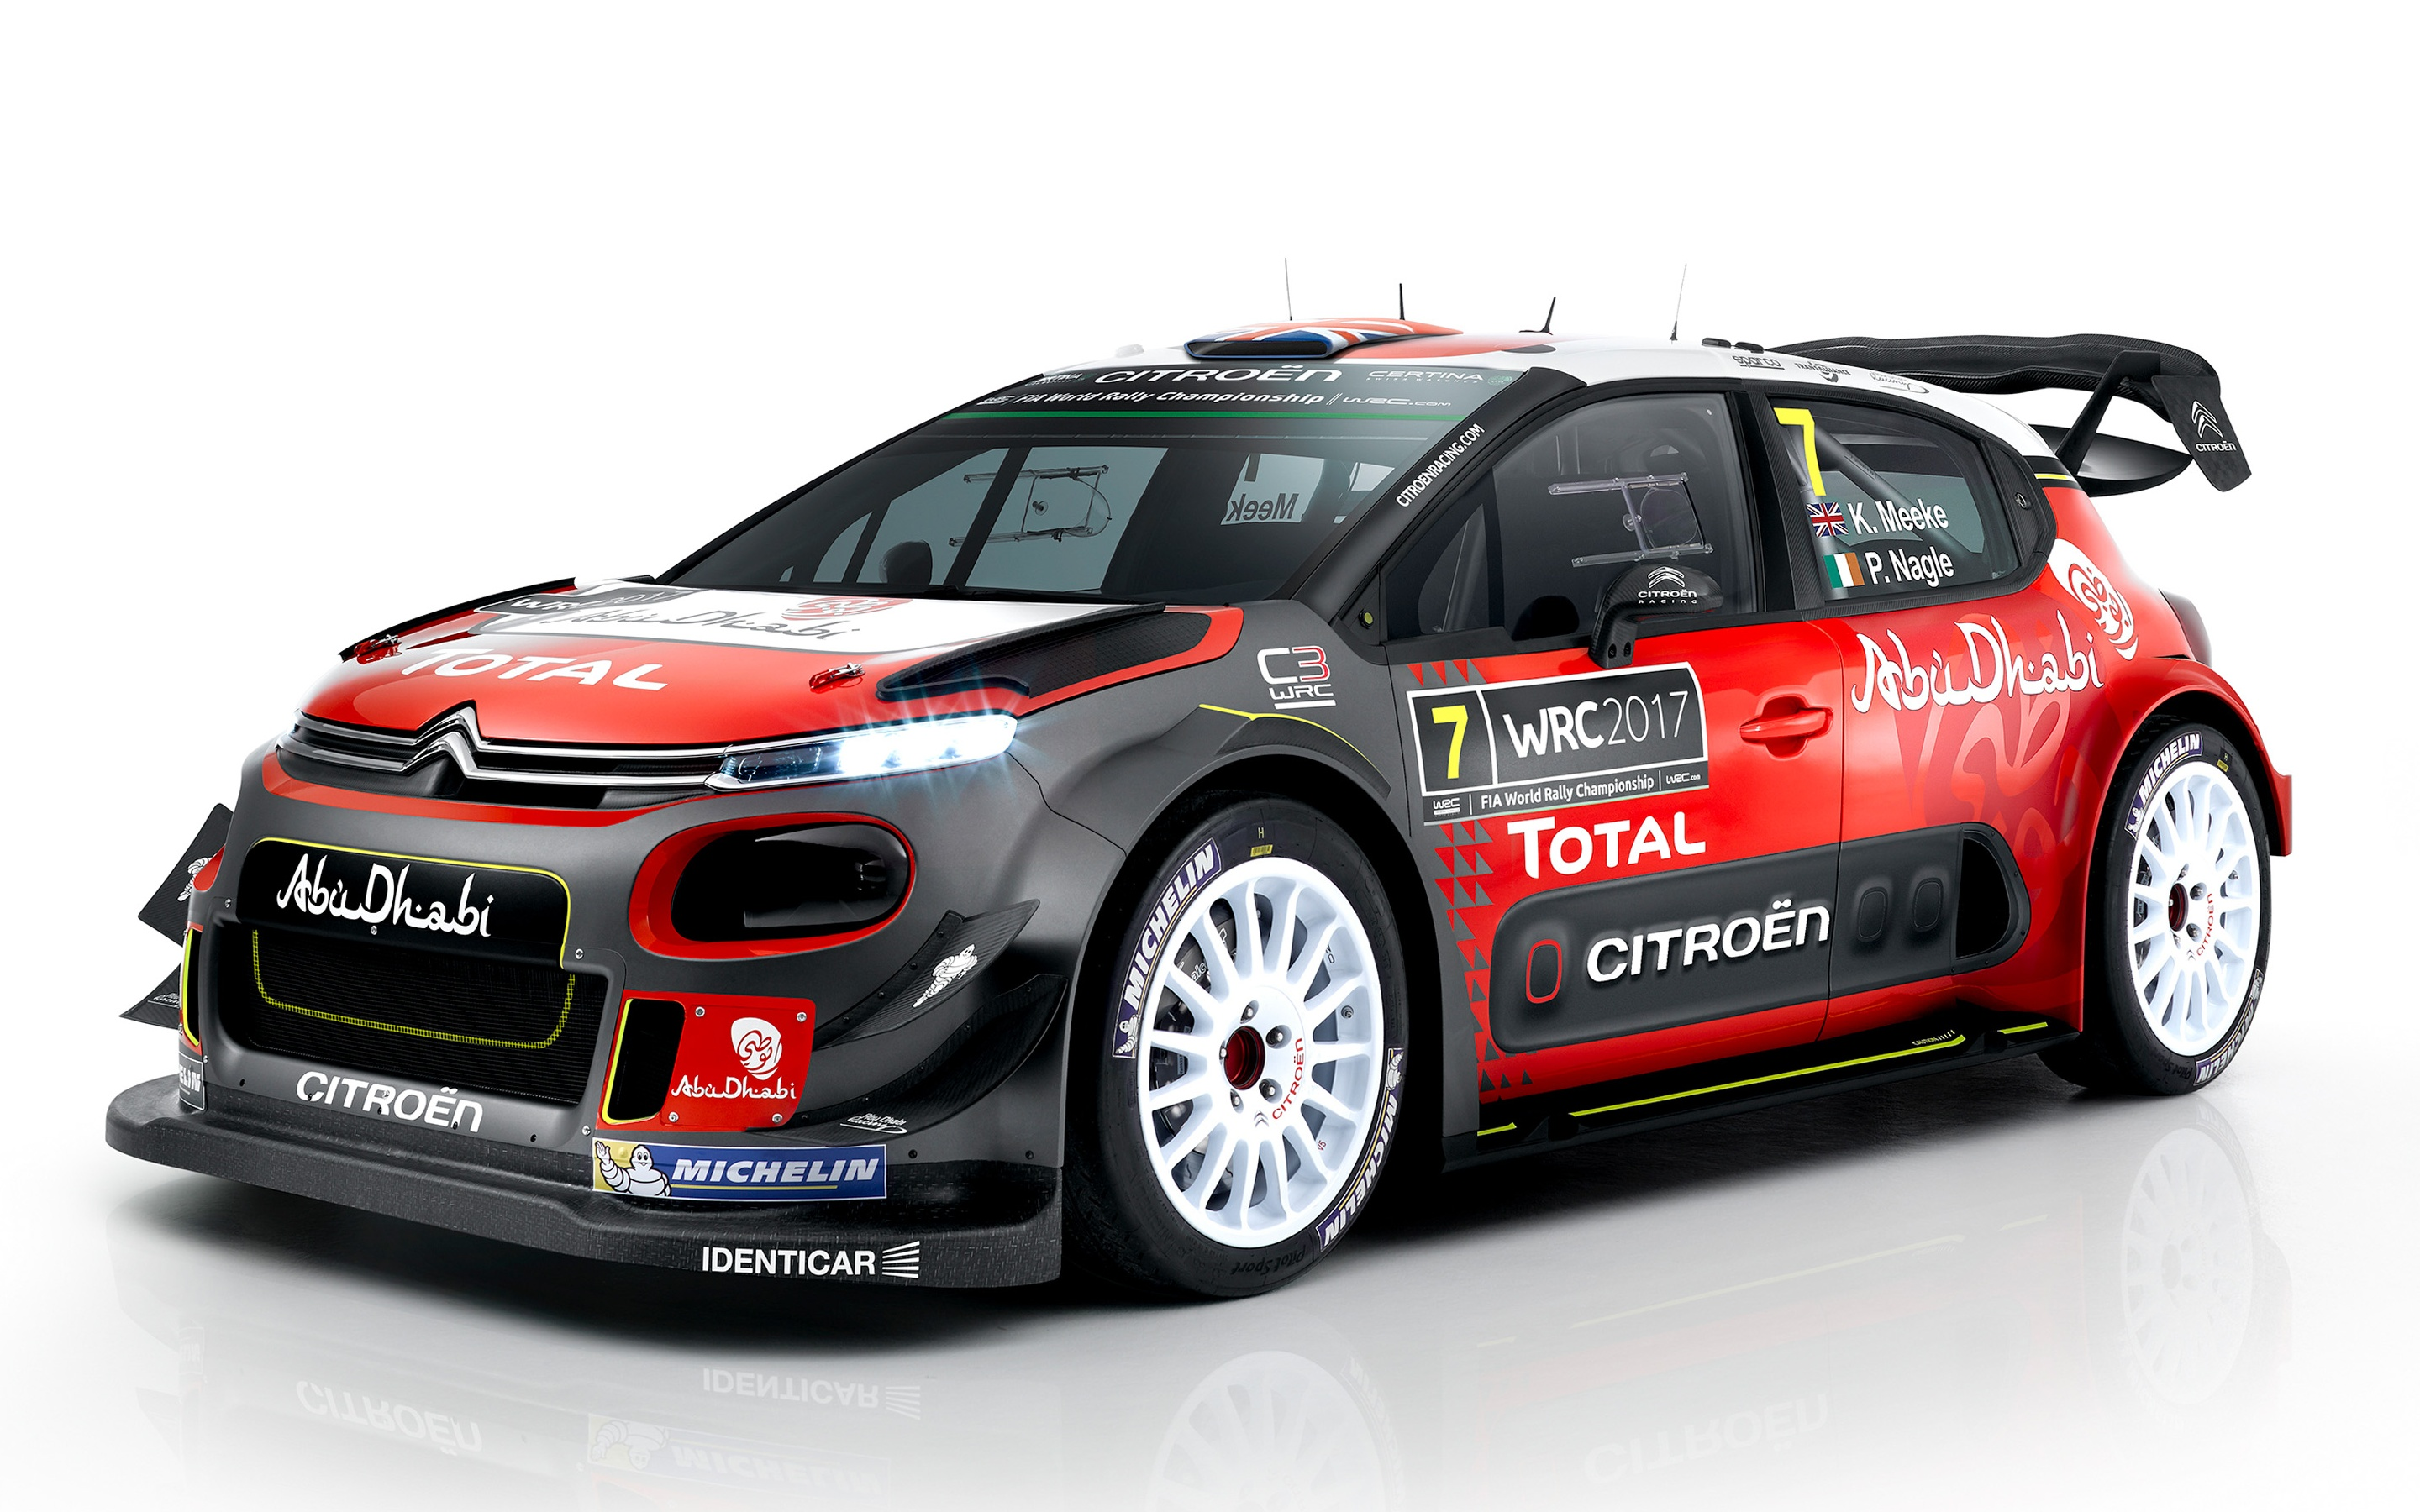 Citroën unveils World Rally car for 2017 - AOL UK Cars